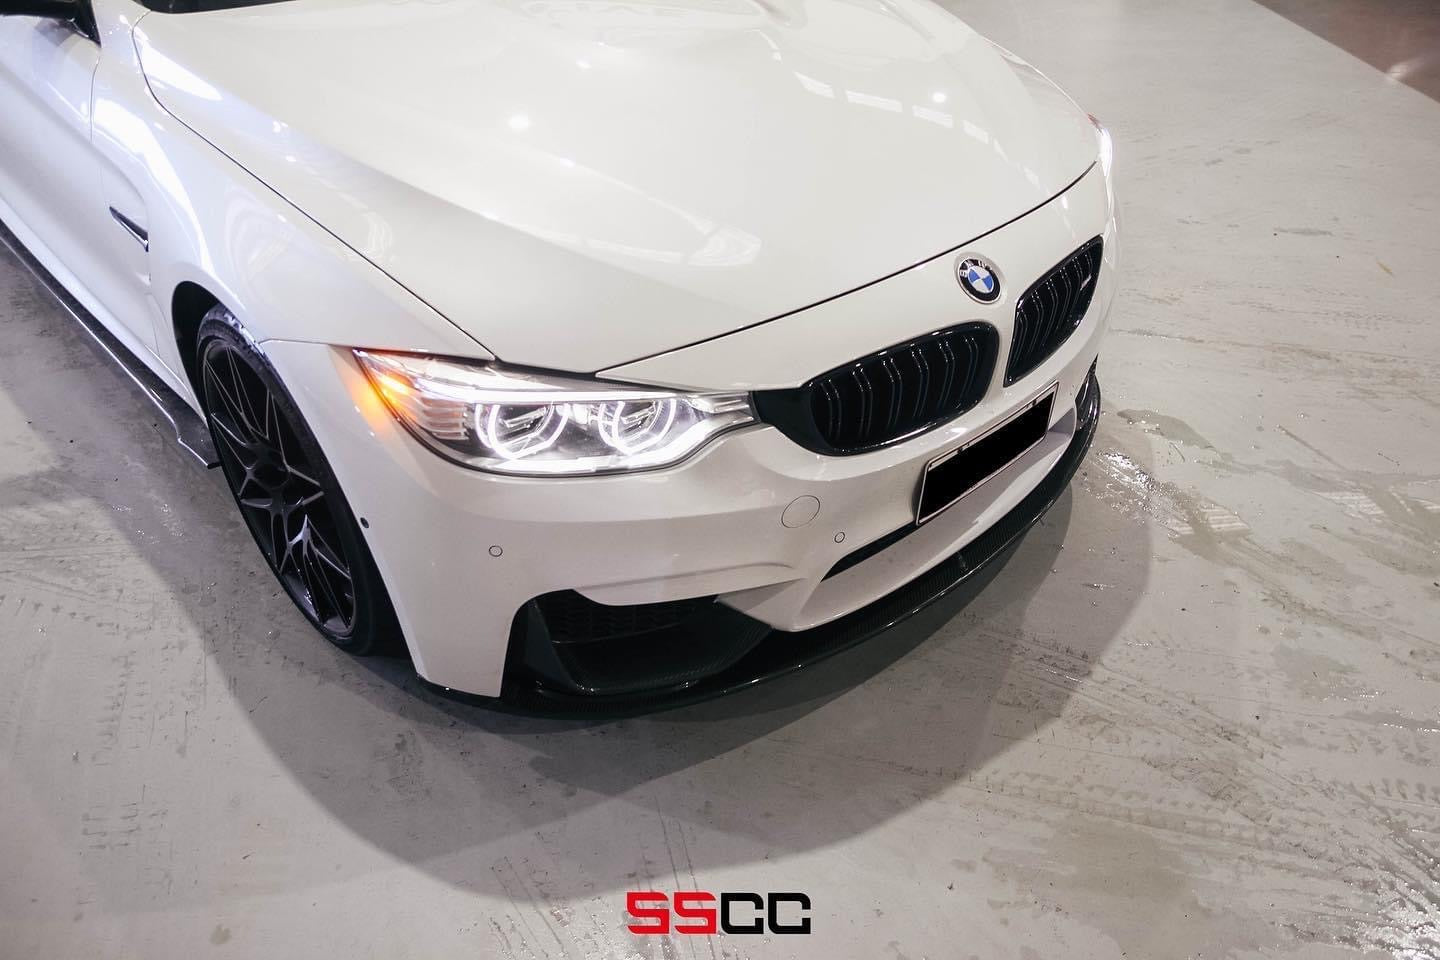 MODE Design Performance Decatted/Catless Downpipes w/ Heat Shield suits BMW M2 Competition (F87) & M3/M4 (F80/F82) S55 - MODE Auto Concepts